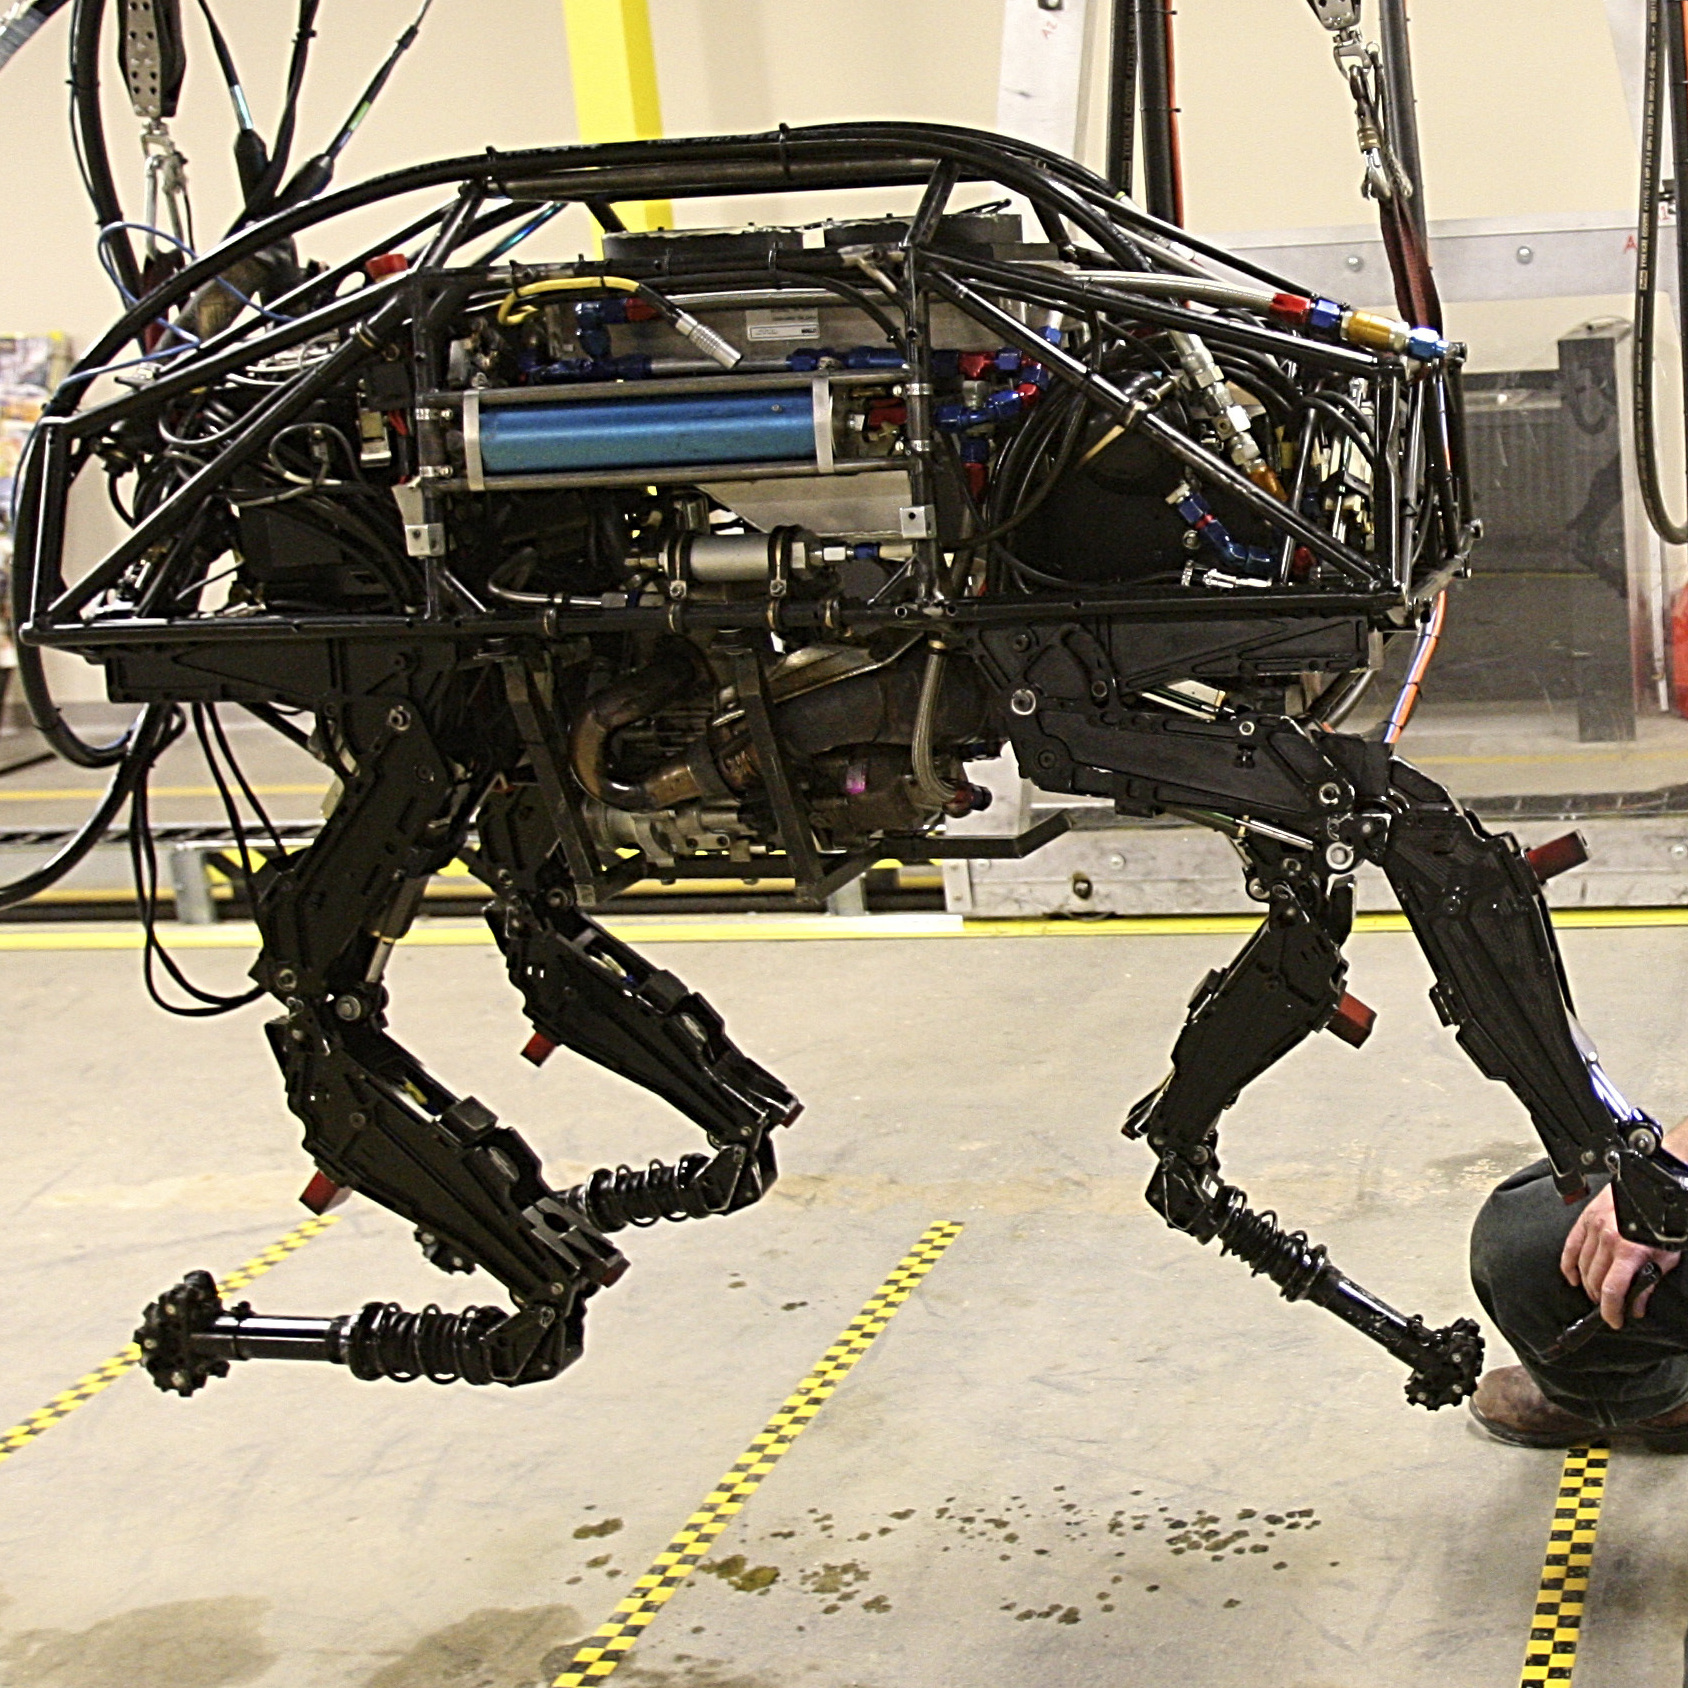 A BigDog robot at Boston Dynamics in 2010. One of the company's robots, called BigDog, is being developed to help soldiers carry heavy equipment in the field. It can follow a human being, walking across wet/sandy/rocky terrain, just like a dog would.